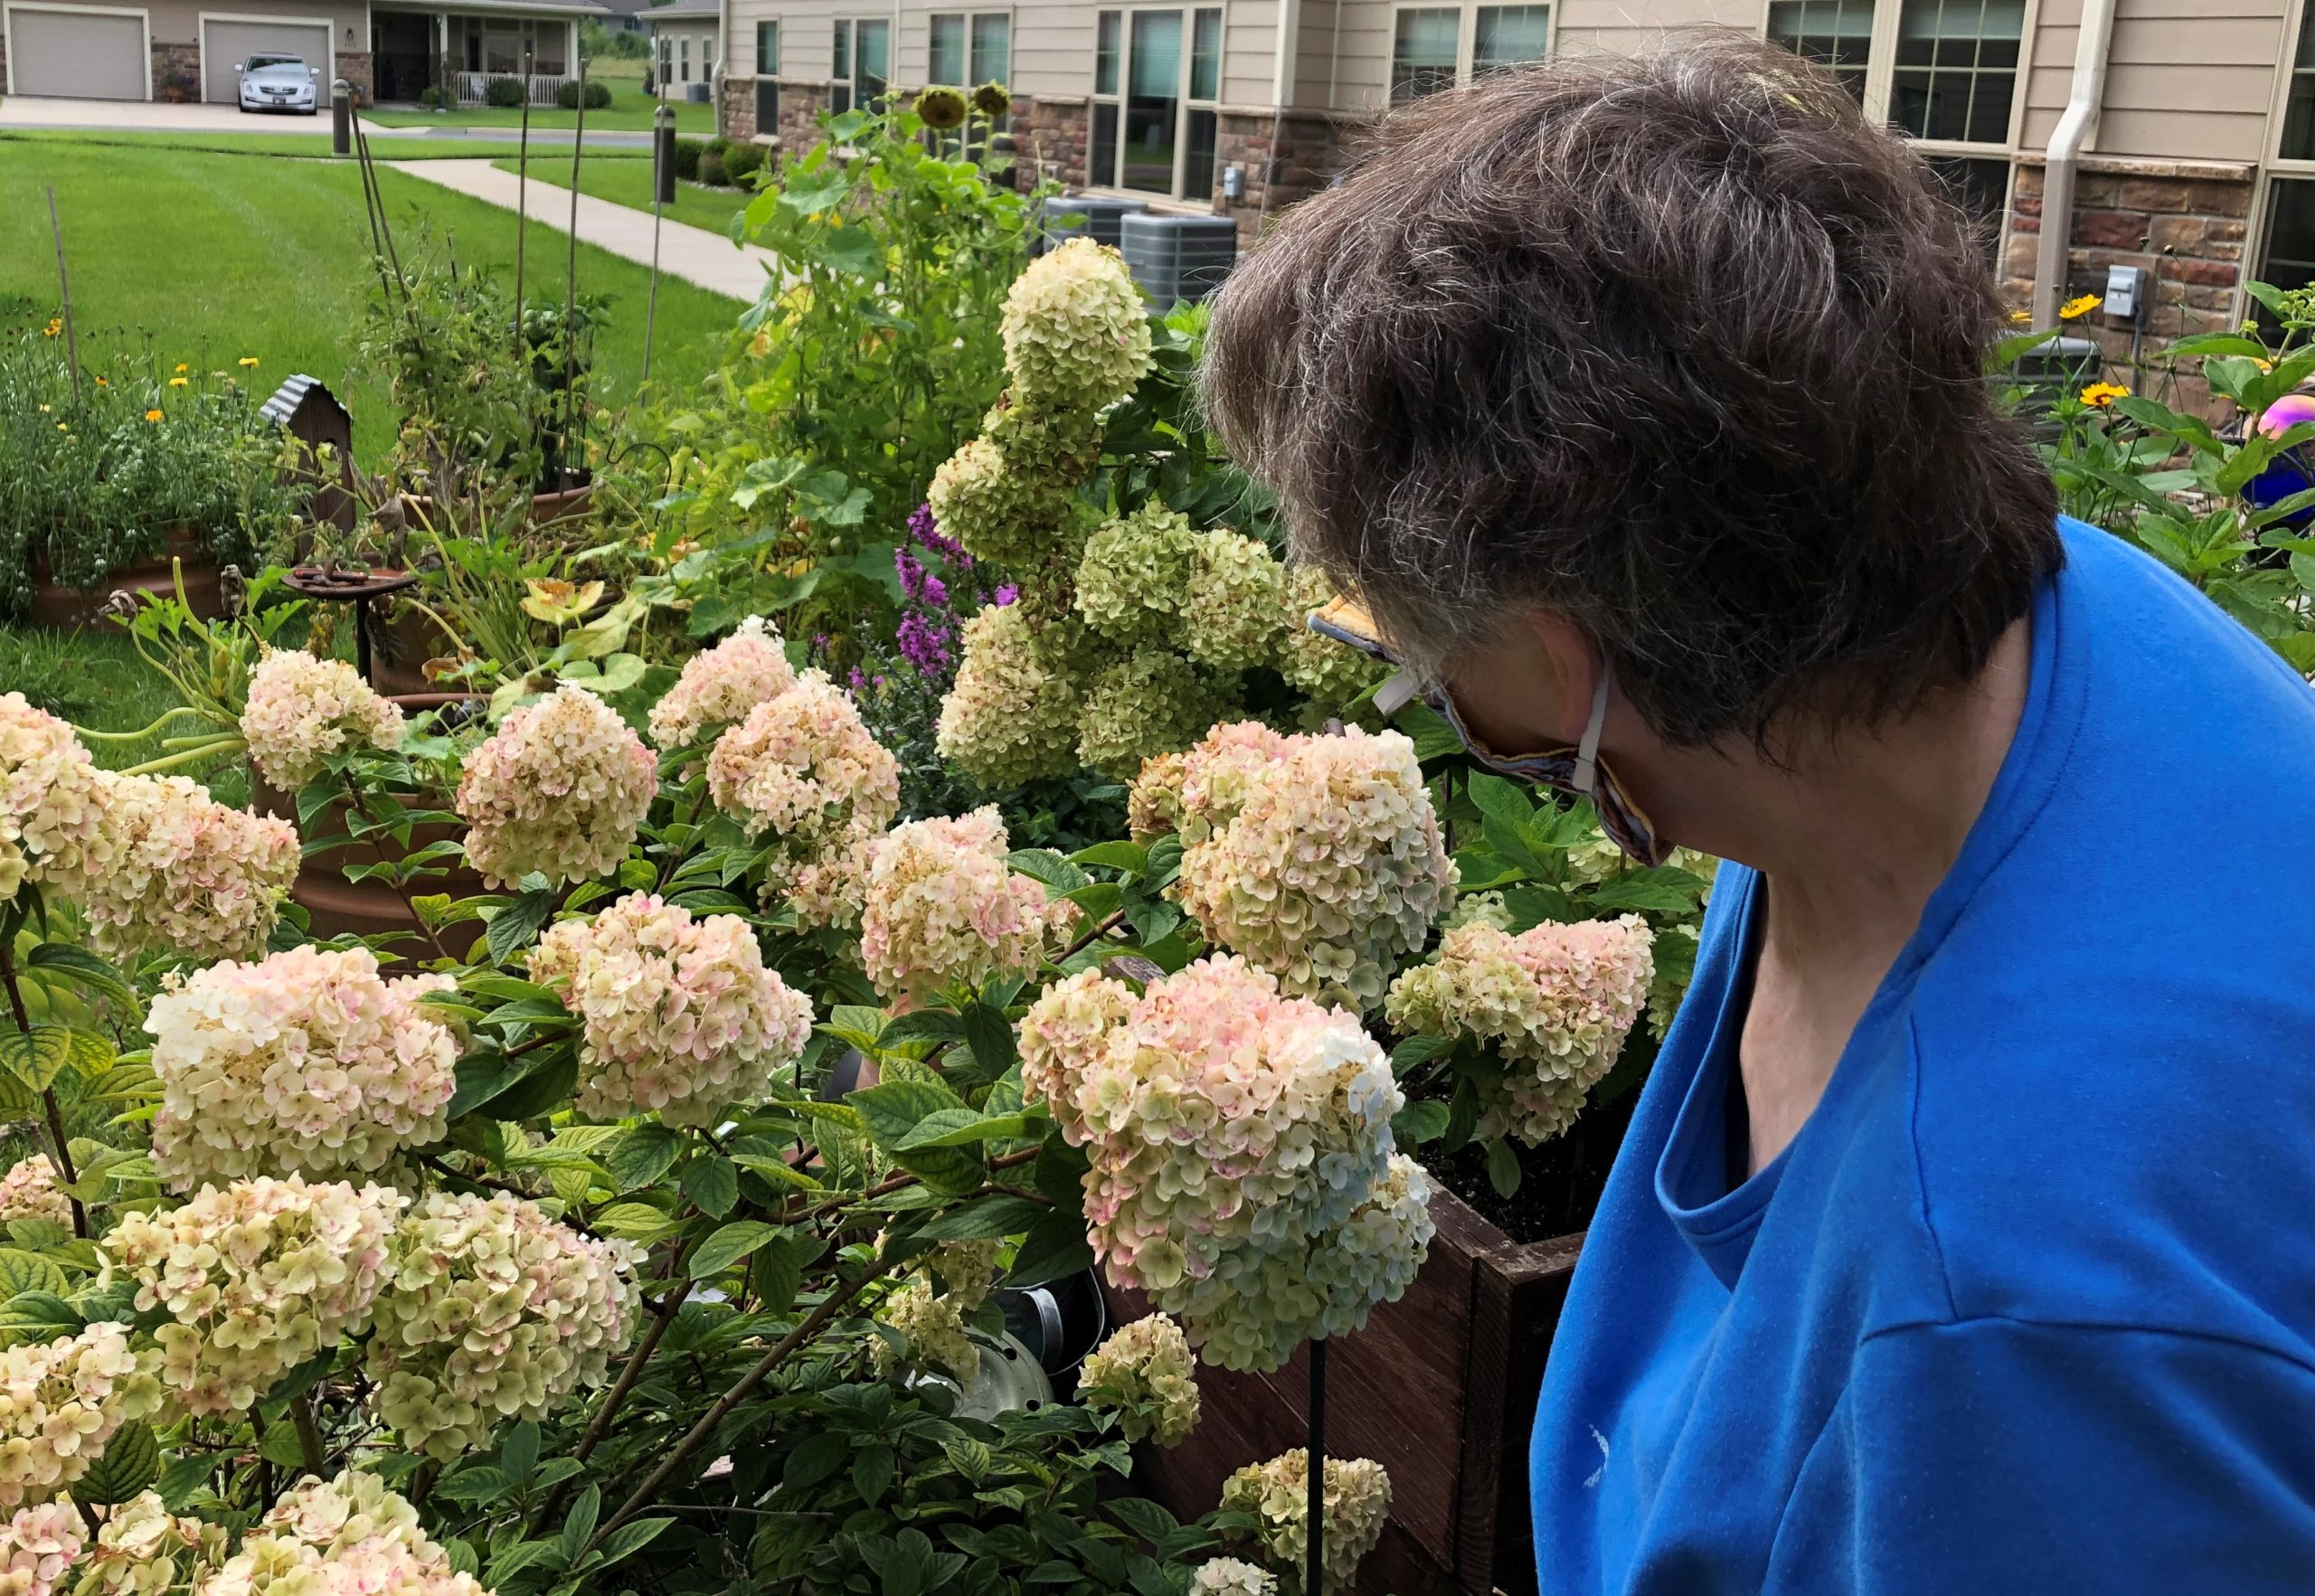 Thank you Sandy for making our Primrose garden beautiful.